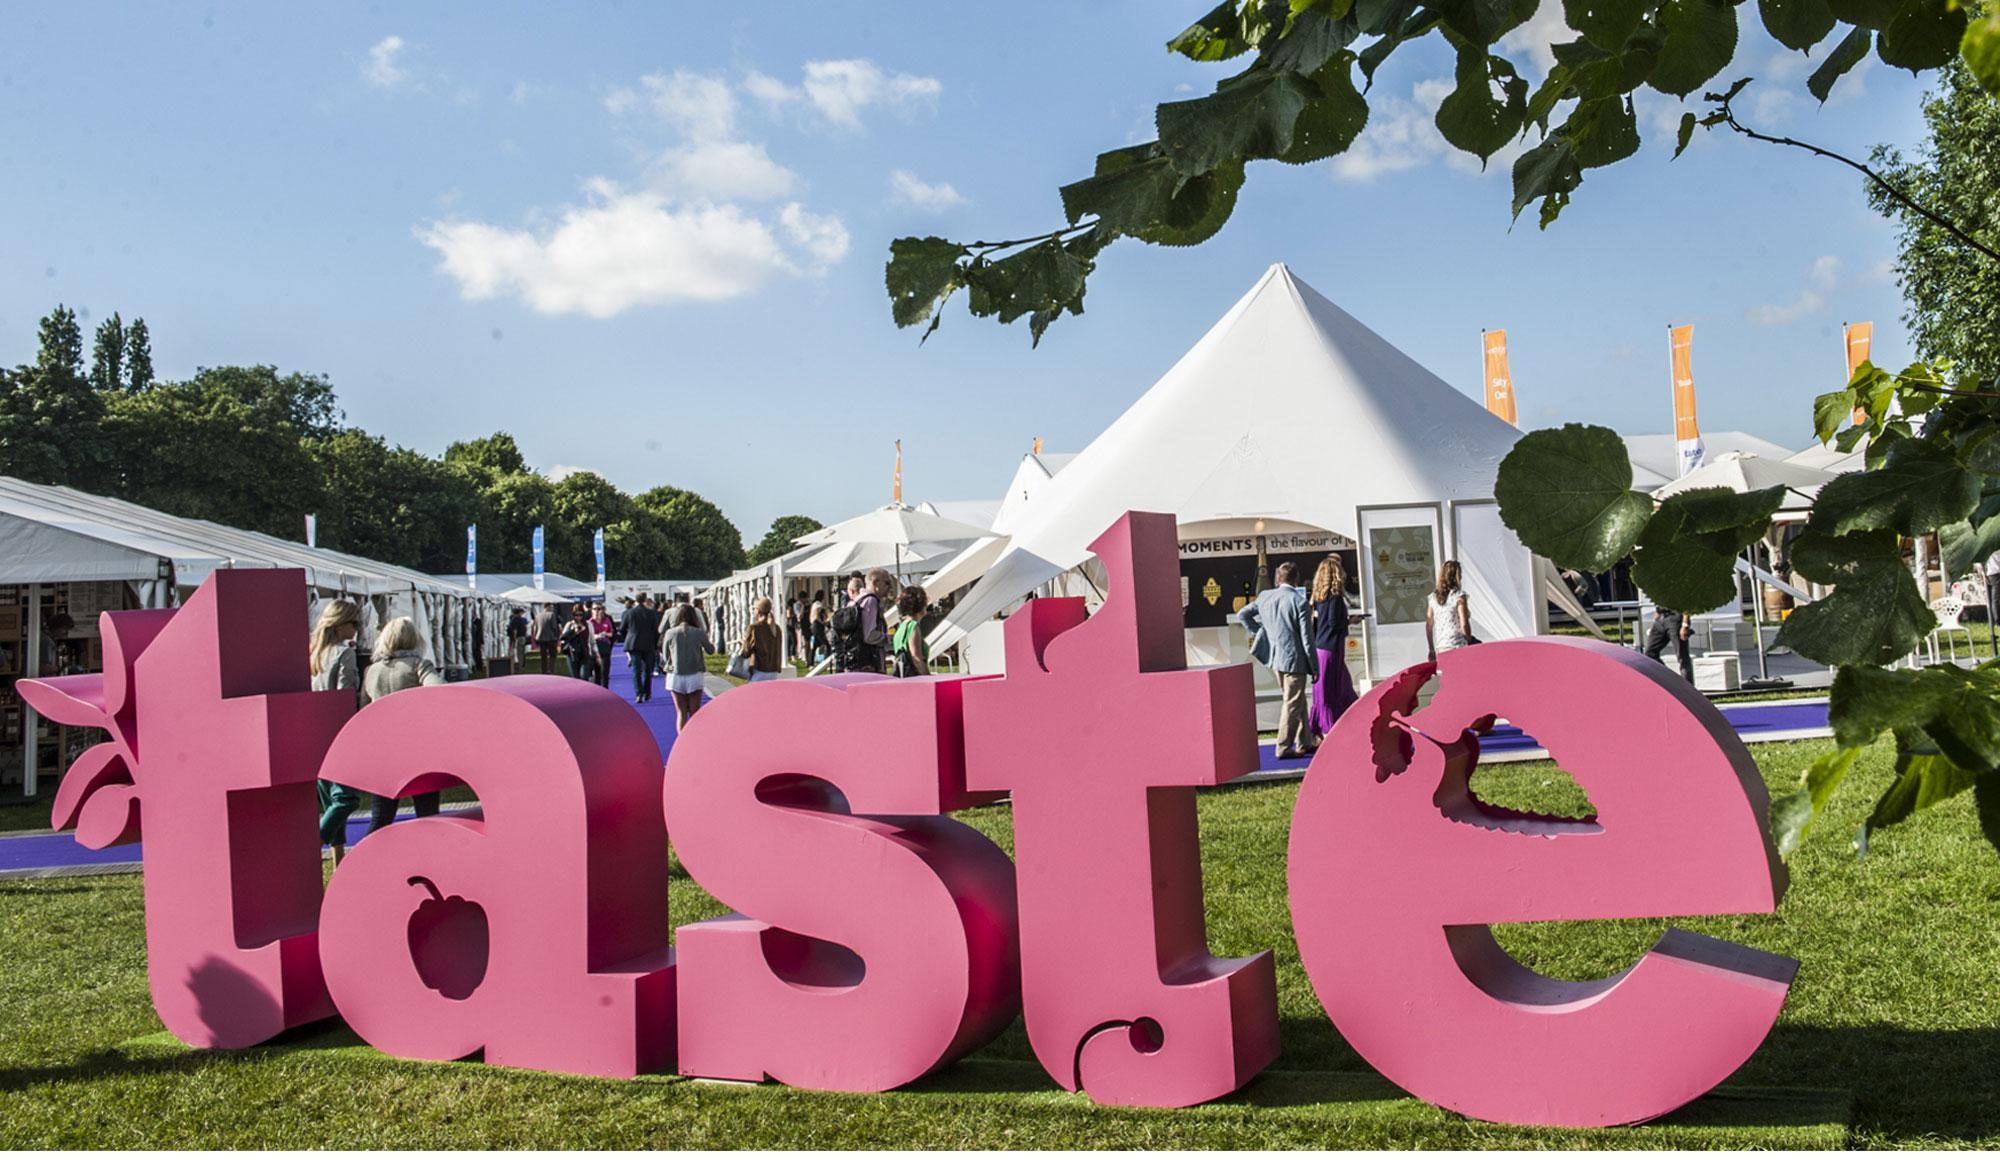 Taste of London is the definitive showcase of the capital'sbest restaurants, top chefs and leading food and drink brands.